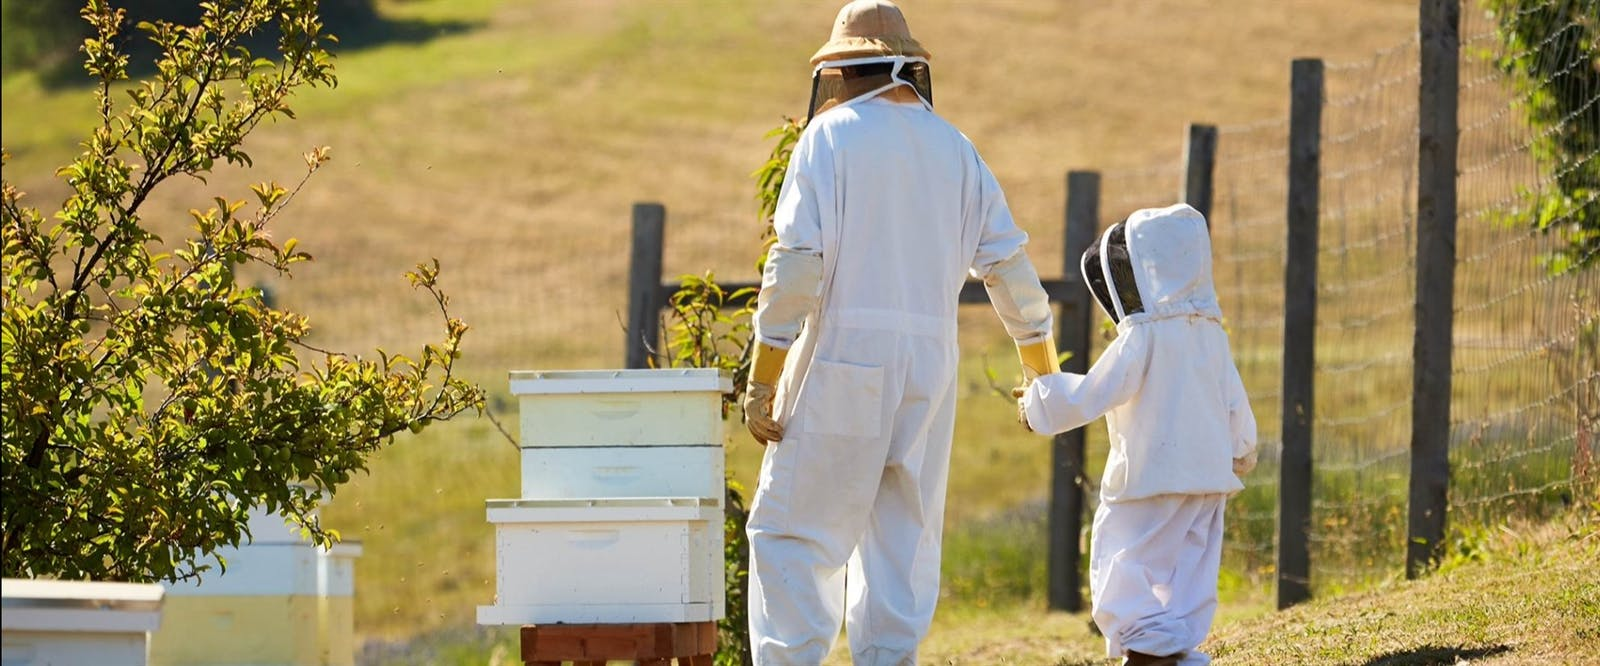 Beekeepers Experience at Carmel Valley Ranch, California